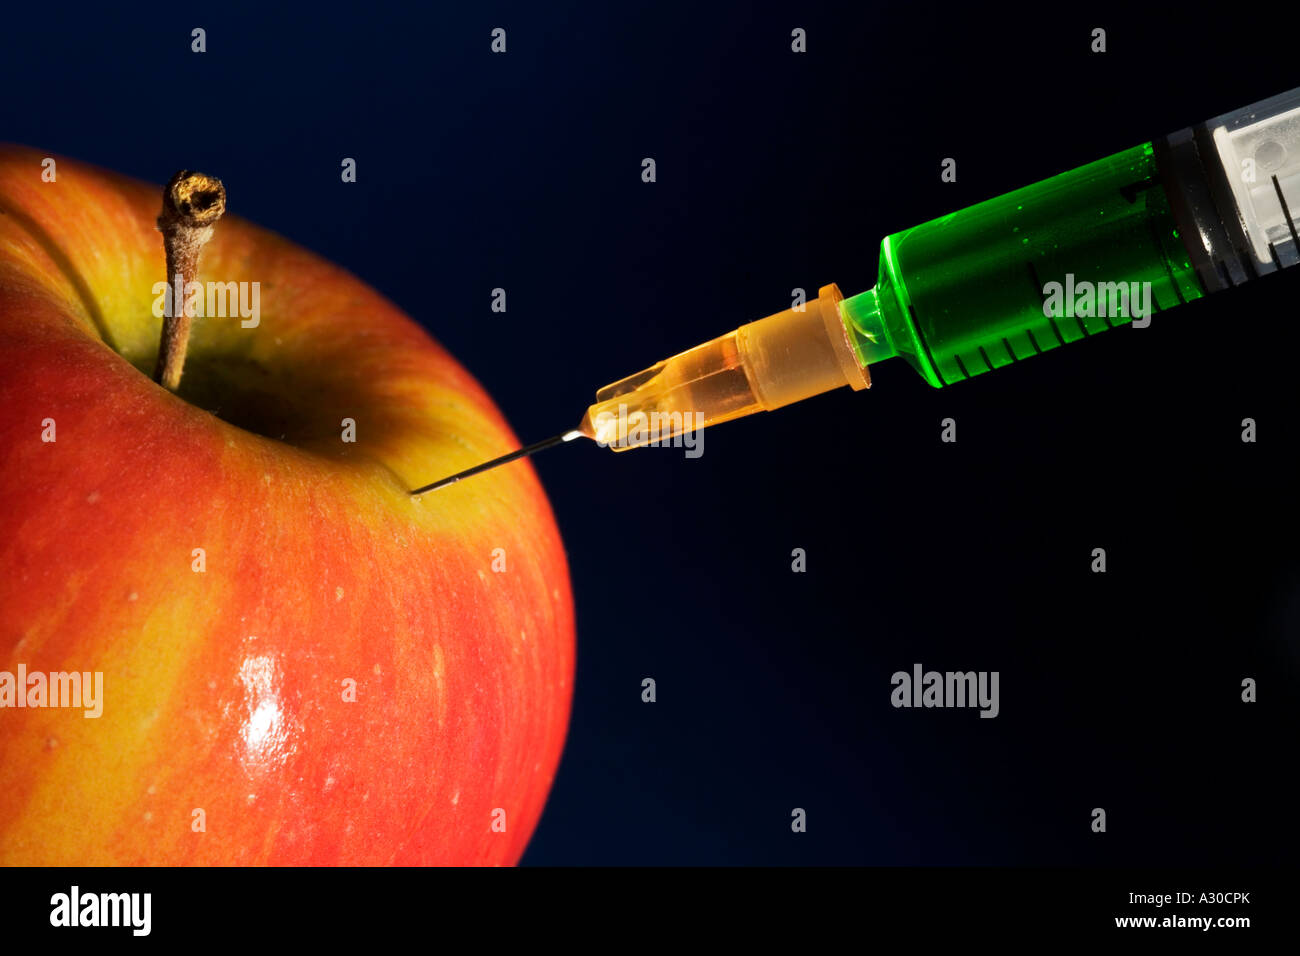 Apple injected with green liquid Concept to represent genetically modified food - Stock Image